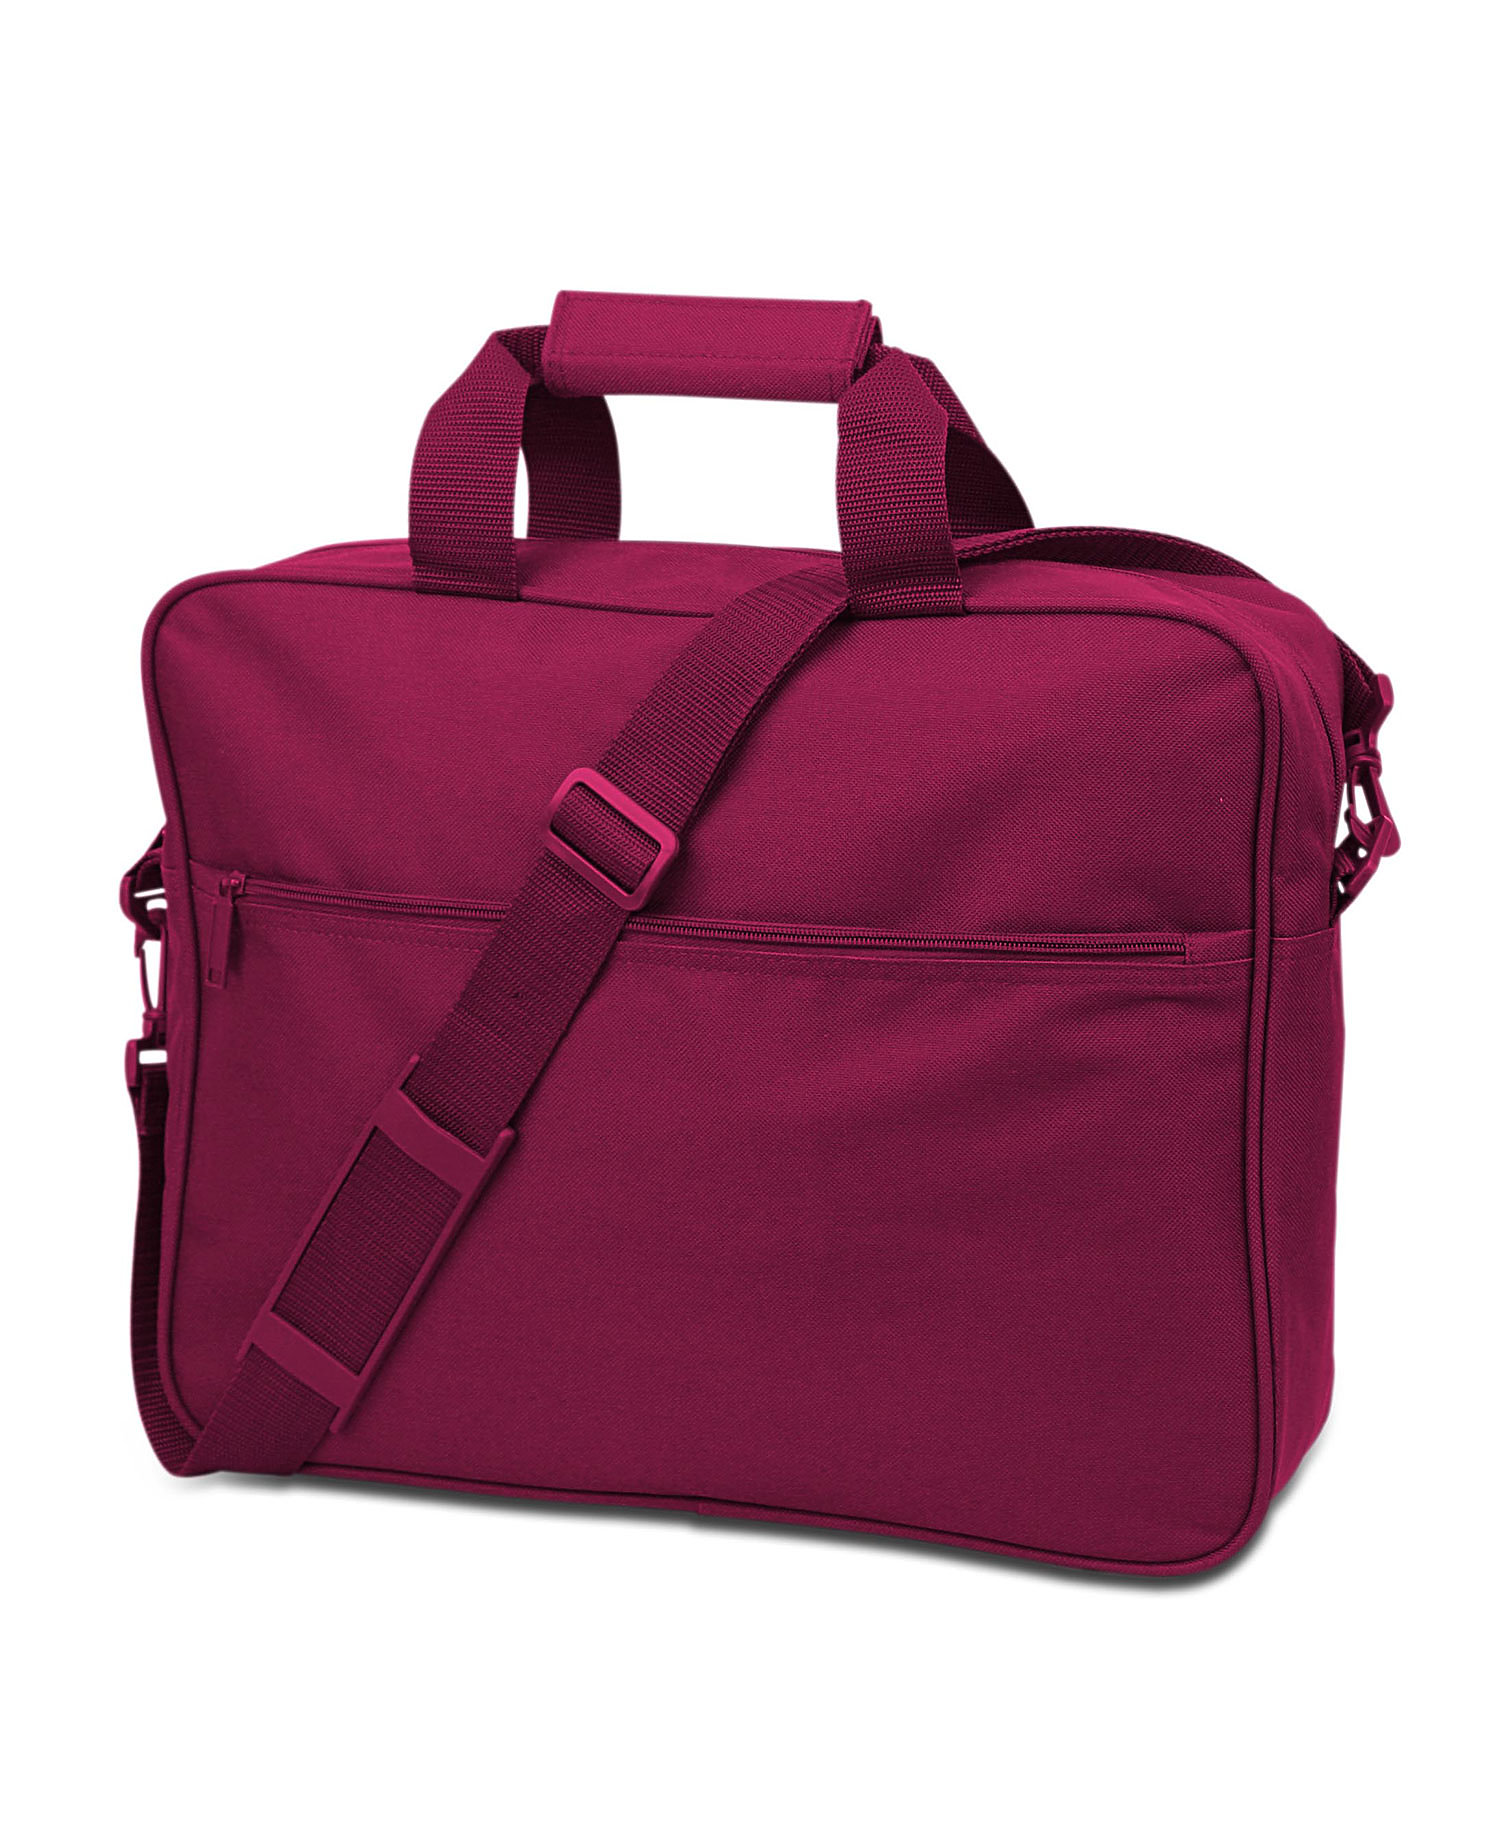 339b762ff0ef Liberty Bags 8803 - Convention Briefcase - Cardinal